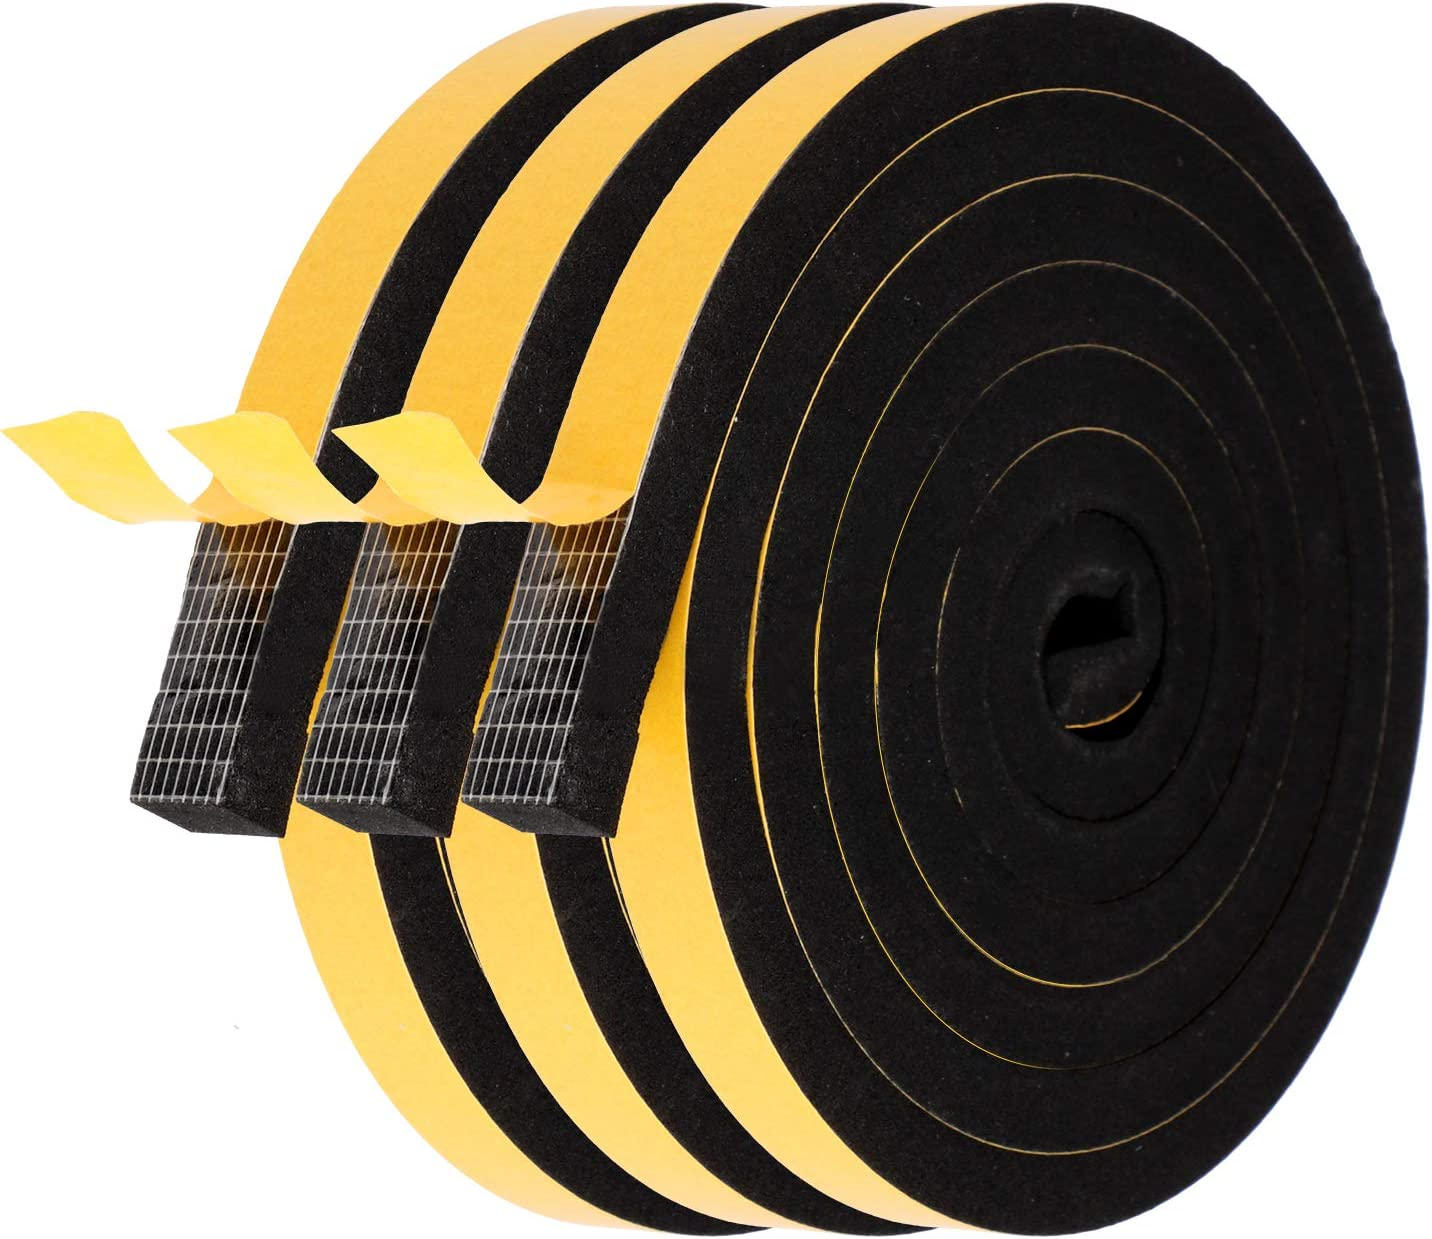 Foam Seal Strip-3 Rolls, 1/2 Inch Wide X 3/8 Inch Thick Total 20 Feet Long, Self Adhesive Weather Stripping for Doors Insulation Soundproofing Closed Cell EPDM Foam Tape Window Seal(6.5ft x 3 Rolls)